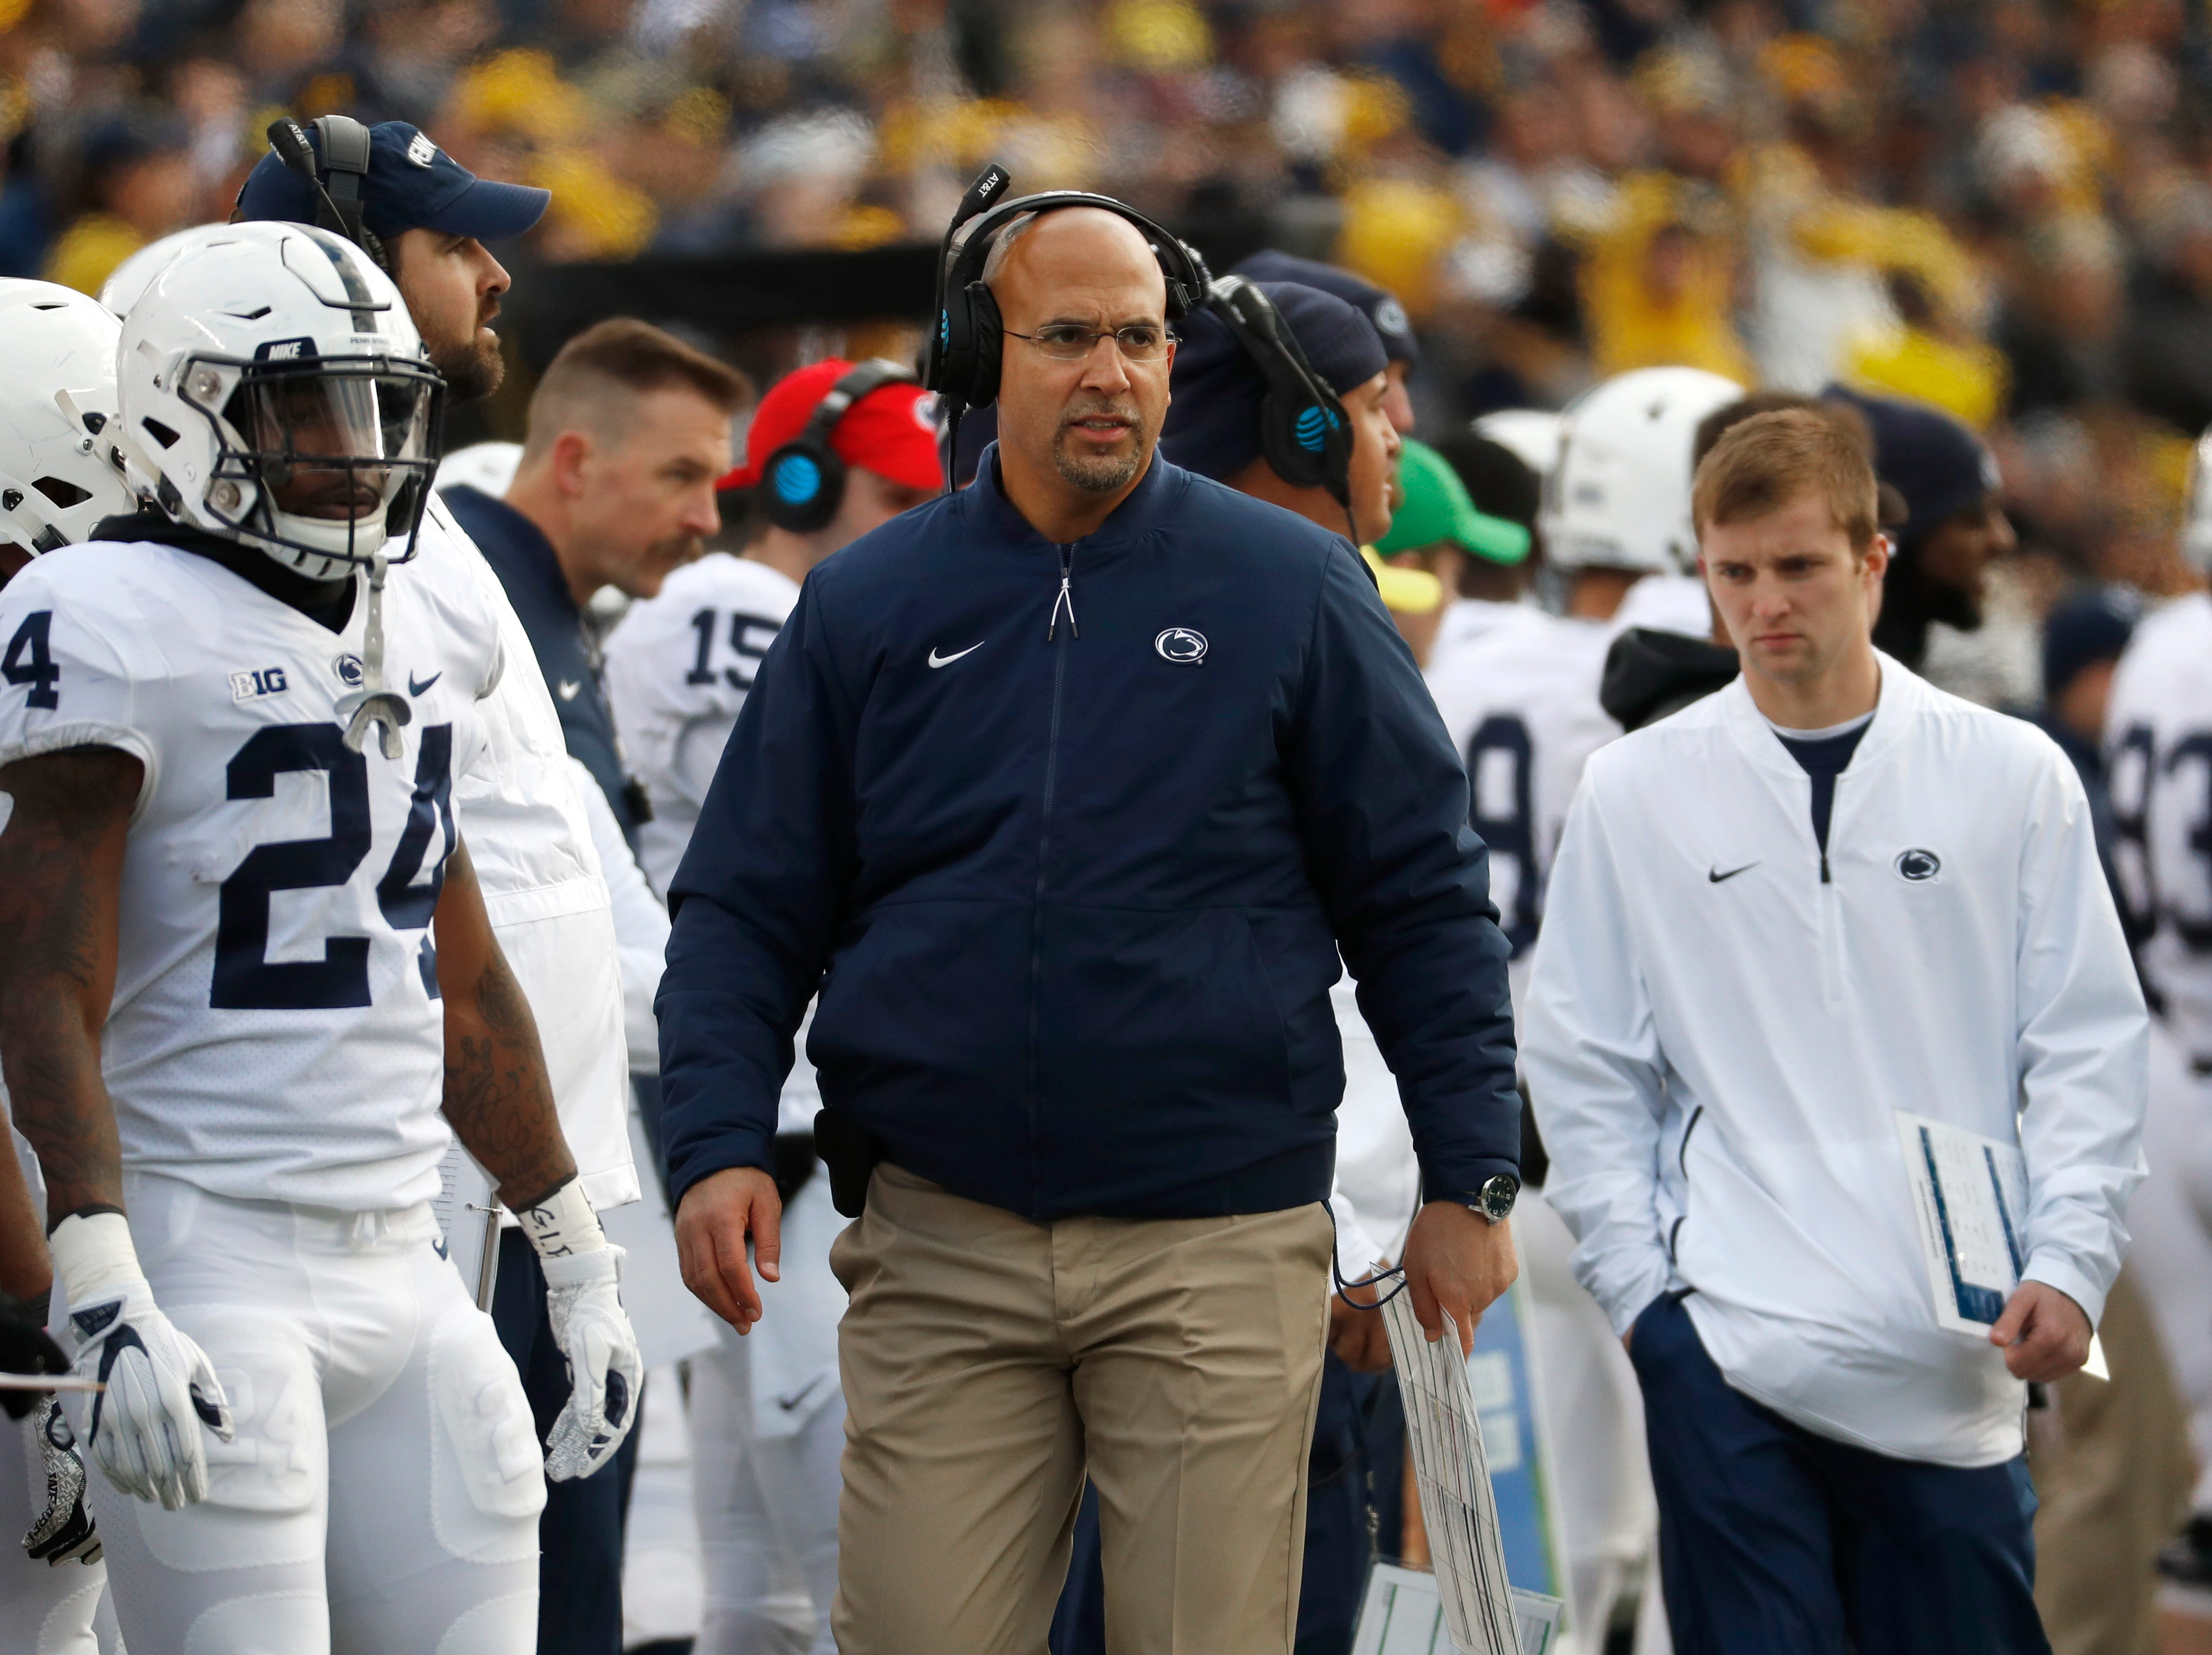 Penn State head coach James Franklin watches in the first half of an NCAA college football game against Michigan in Ann Arbor, Mich., Saturday, Nov. 3, 2018. (AP Photo/Paul Sancya)